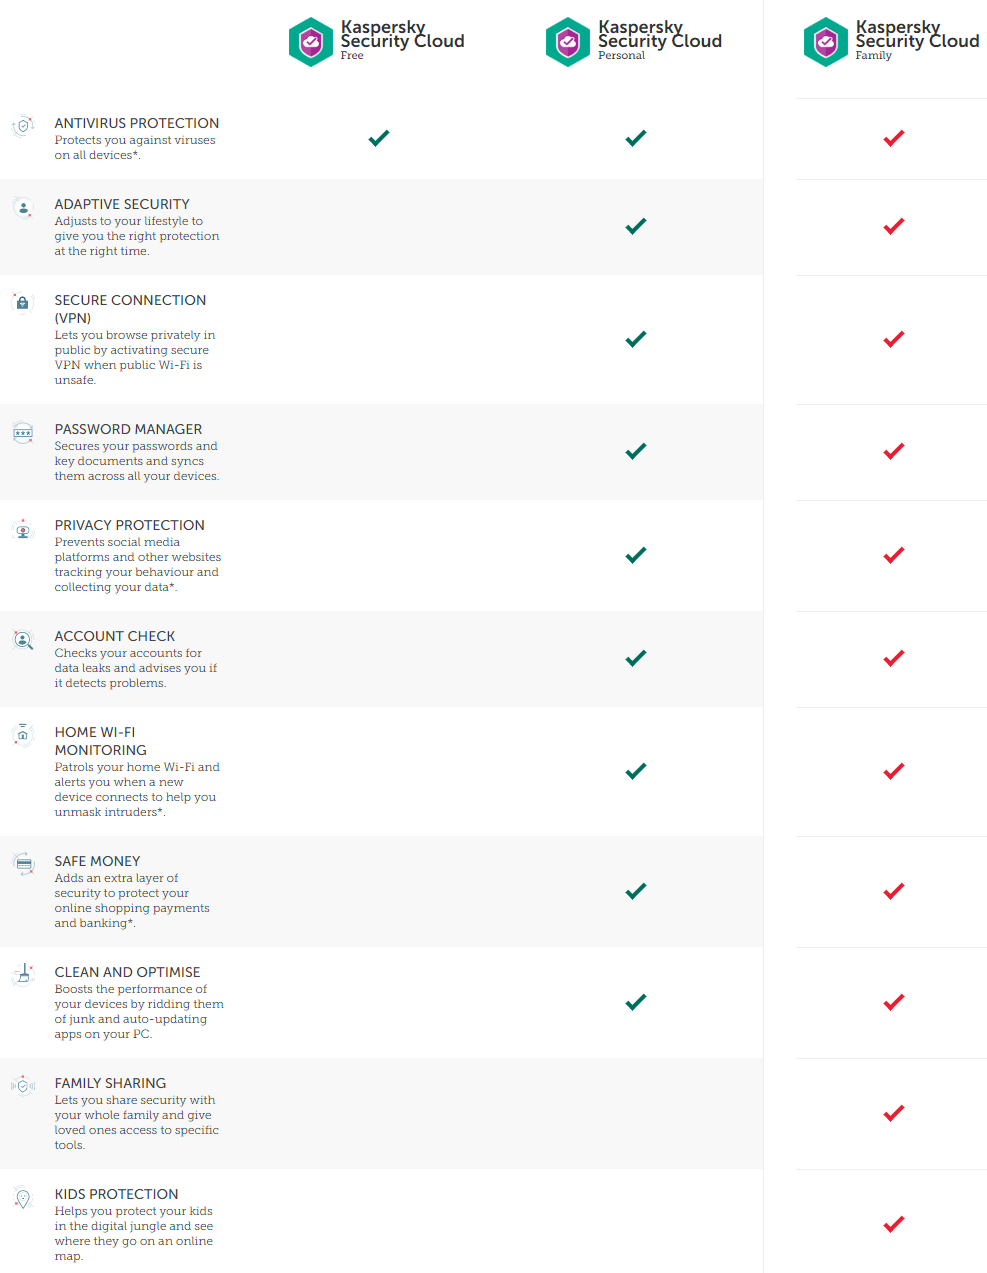 Kaspersky Securtiy Free Cloud Antivirus edition comparision-min